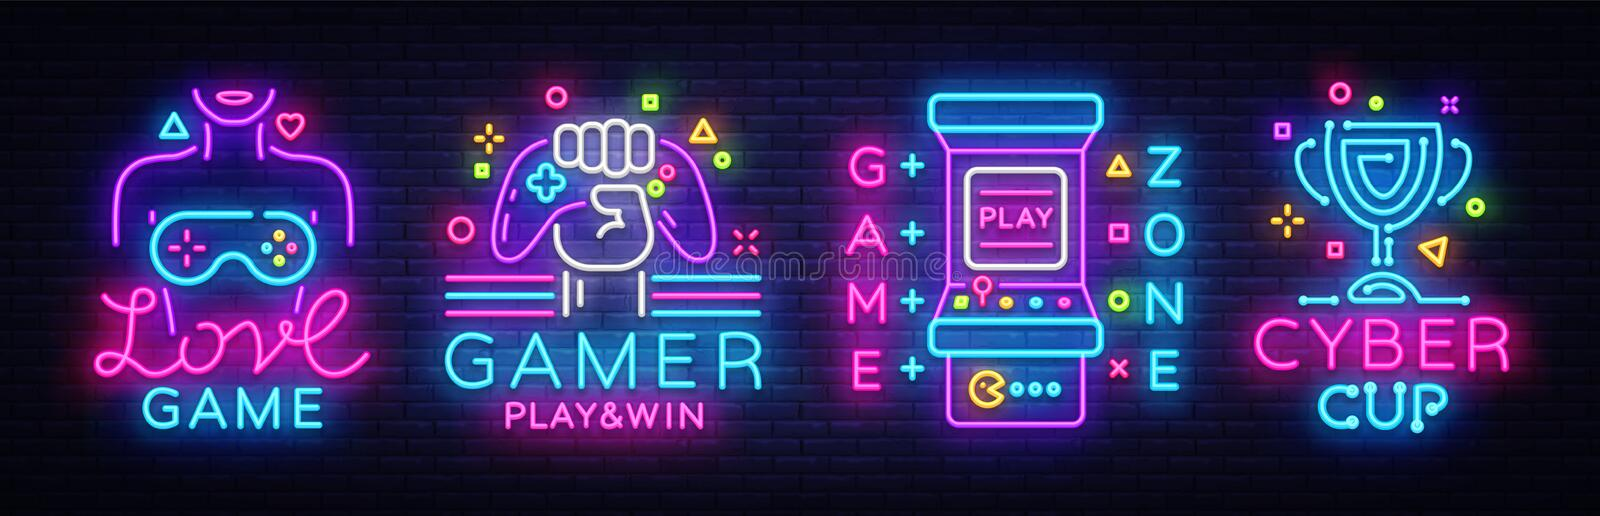 Video Game neon sign collection vector. Conceptual Logos, Love Game, Gamer logo, Game Zone, Cyber sport Emblem in Modern. Trend Design, Vector Template, Light royalty free illustration